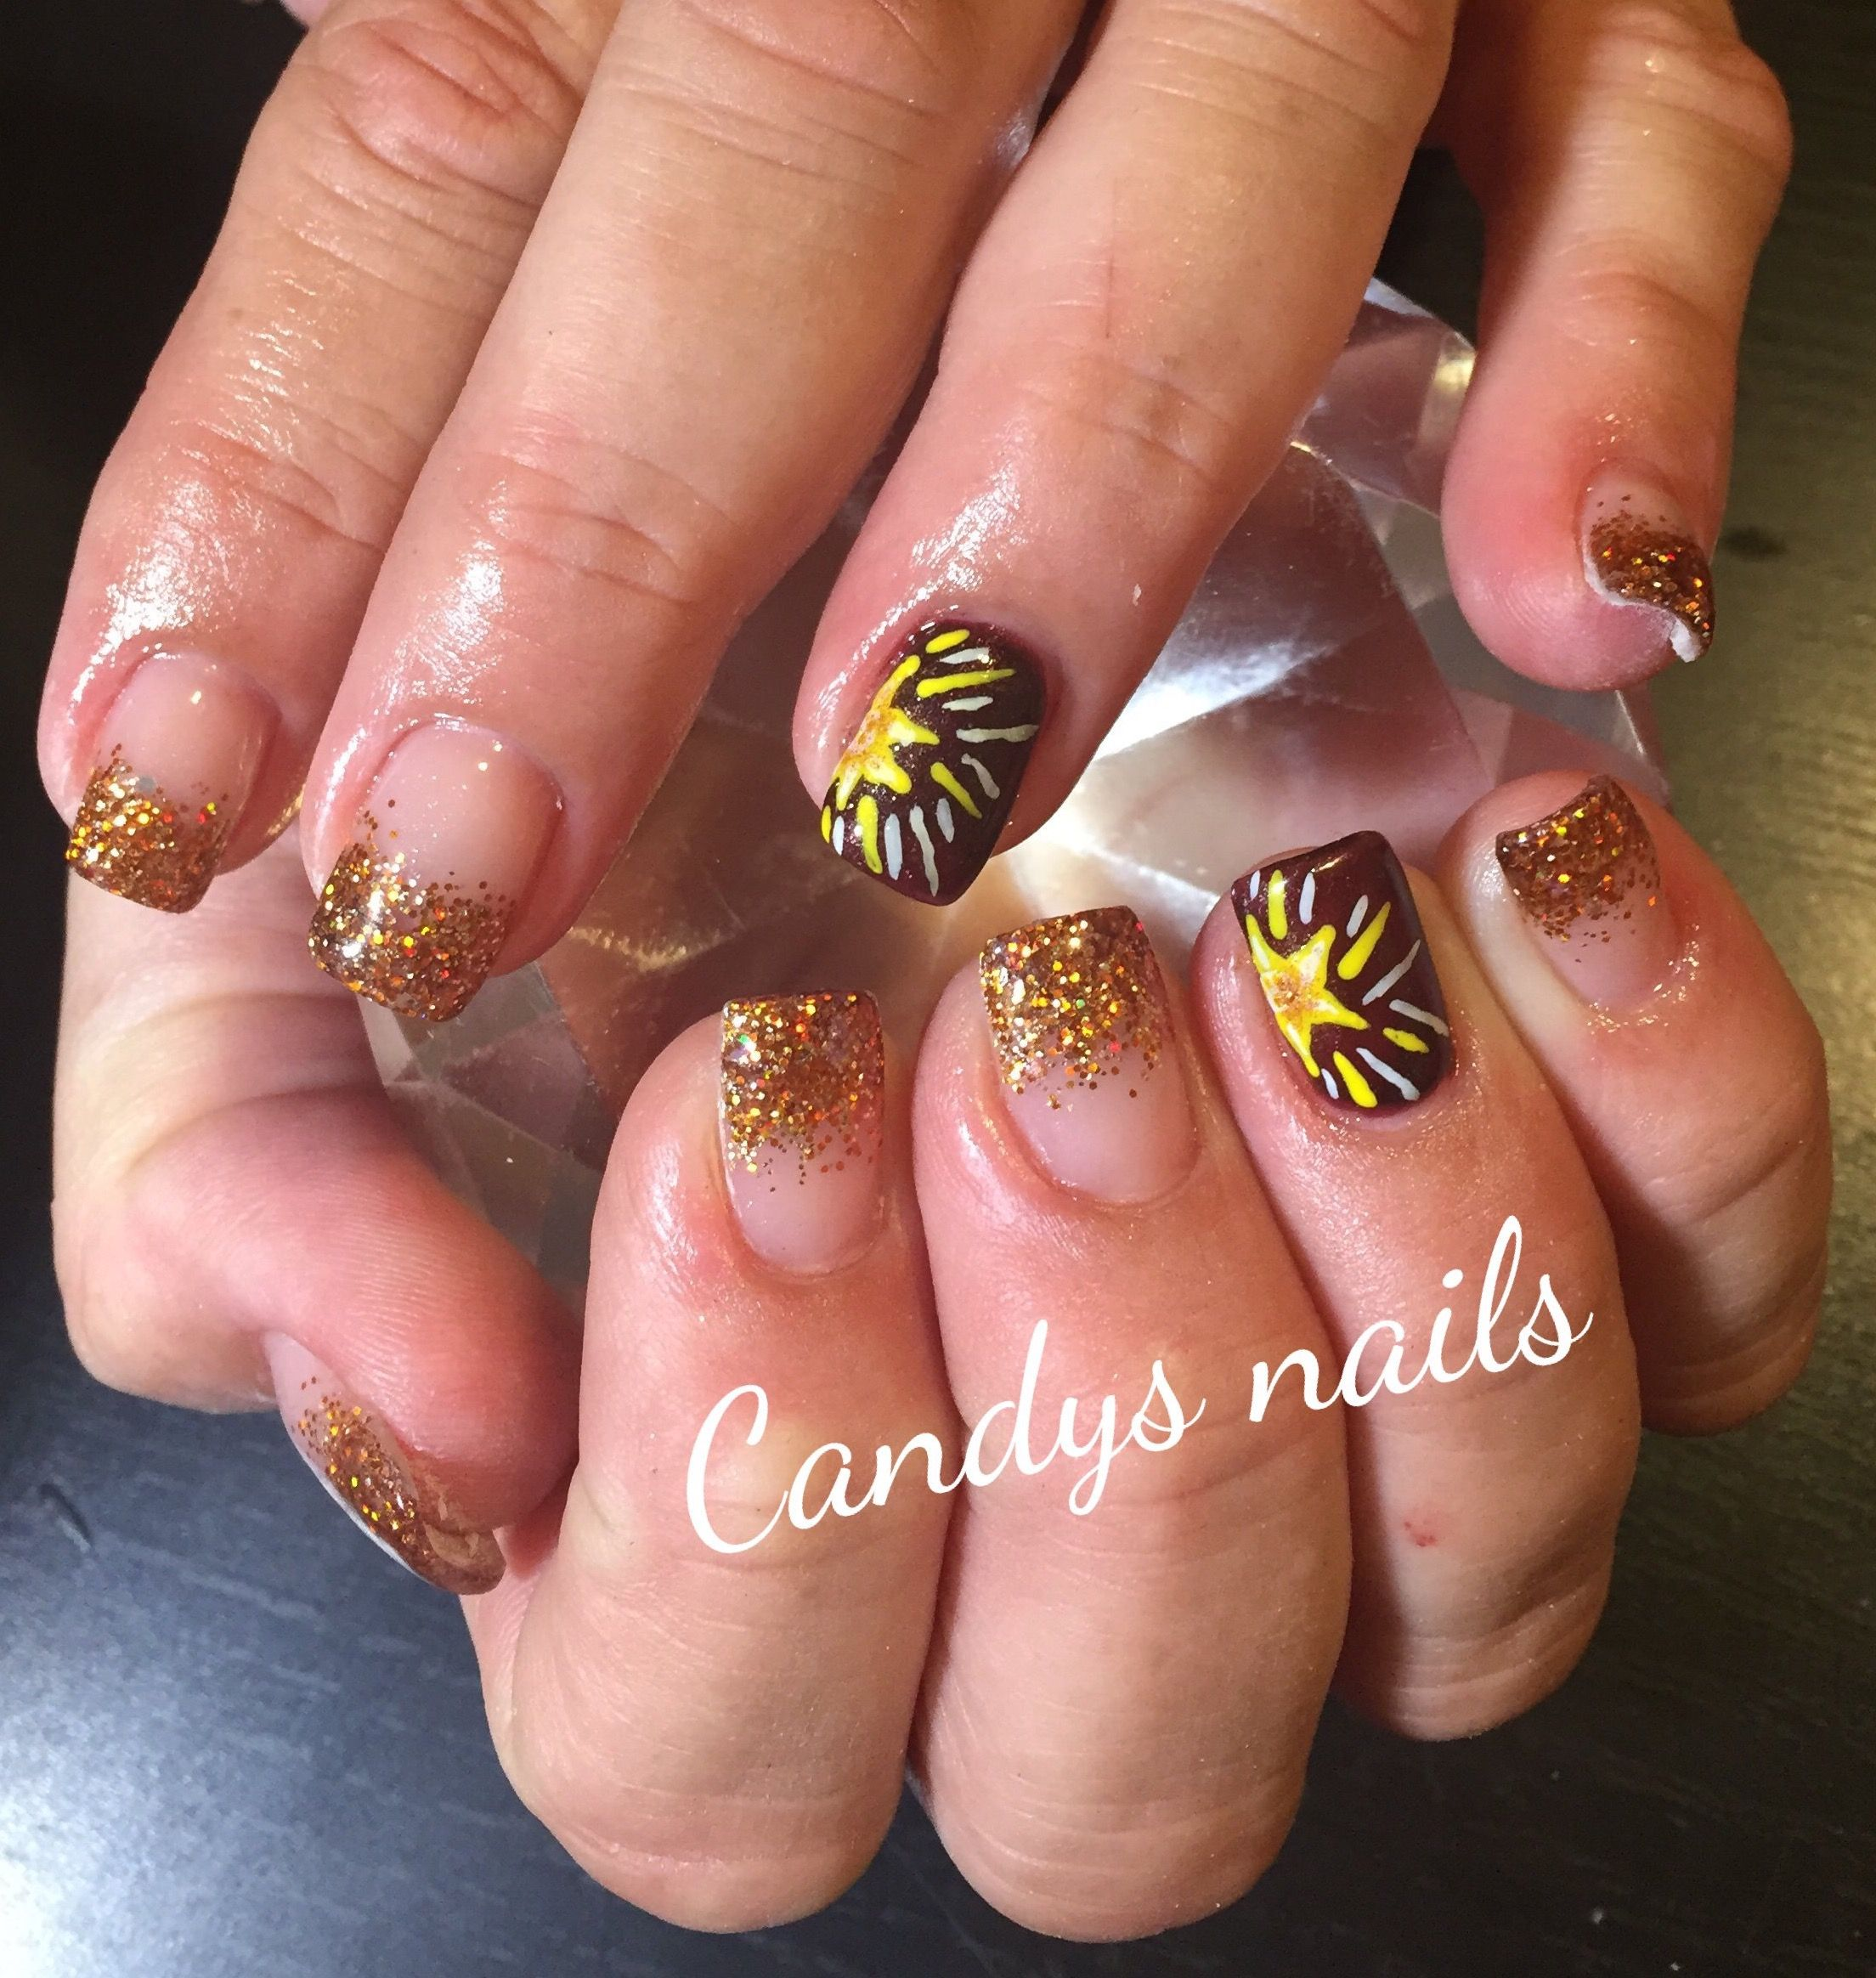 About baby boomer nail art tutorial by nded on pinterest nail art - Gold Glitter Tip Fade Design Acrylic Nails